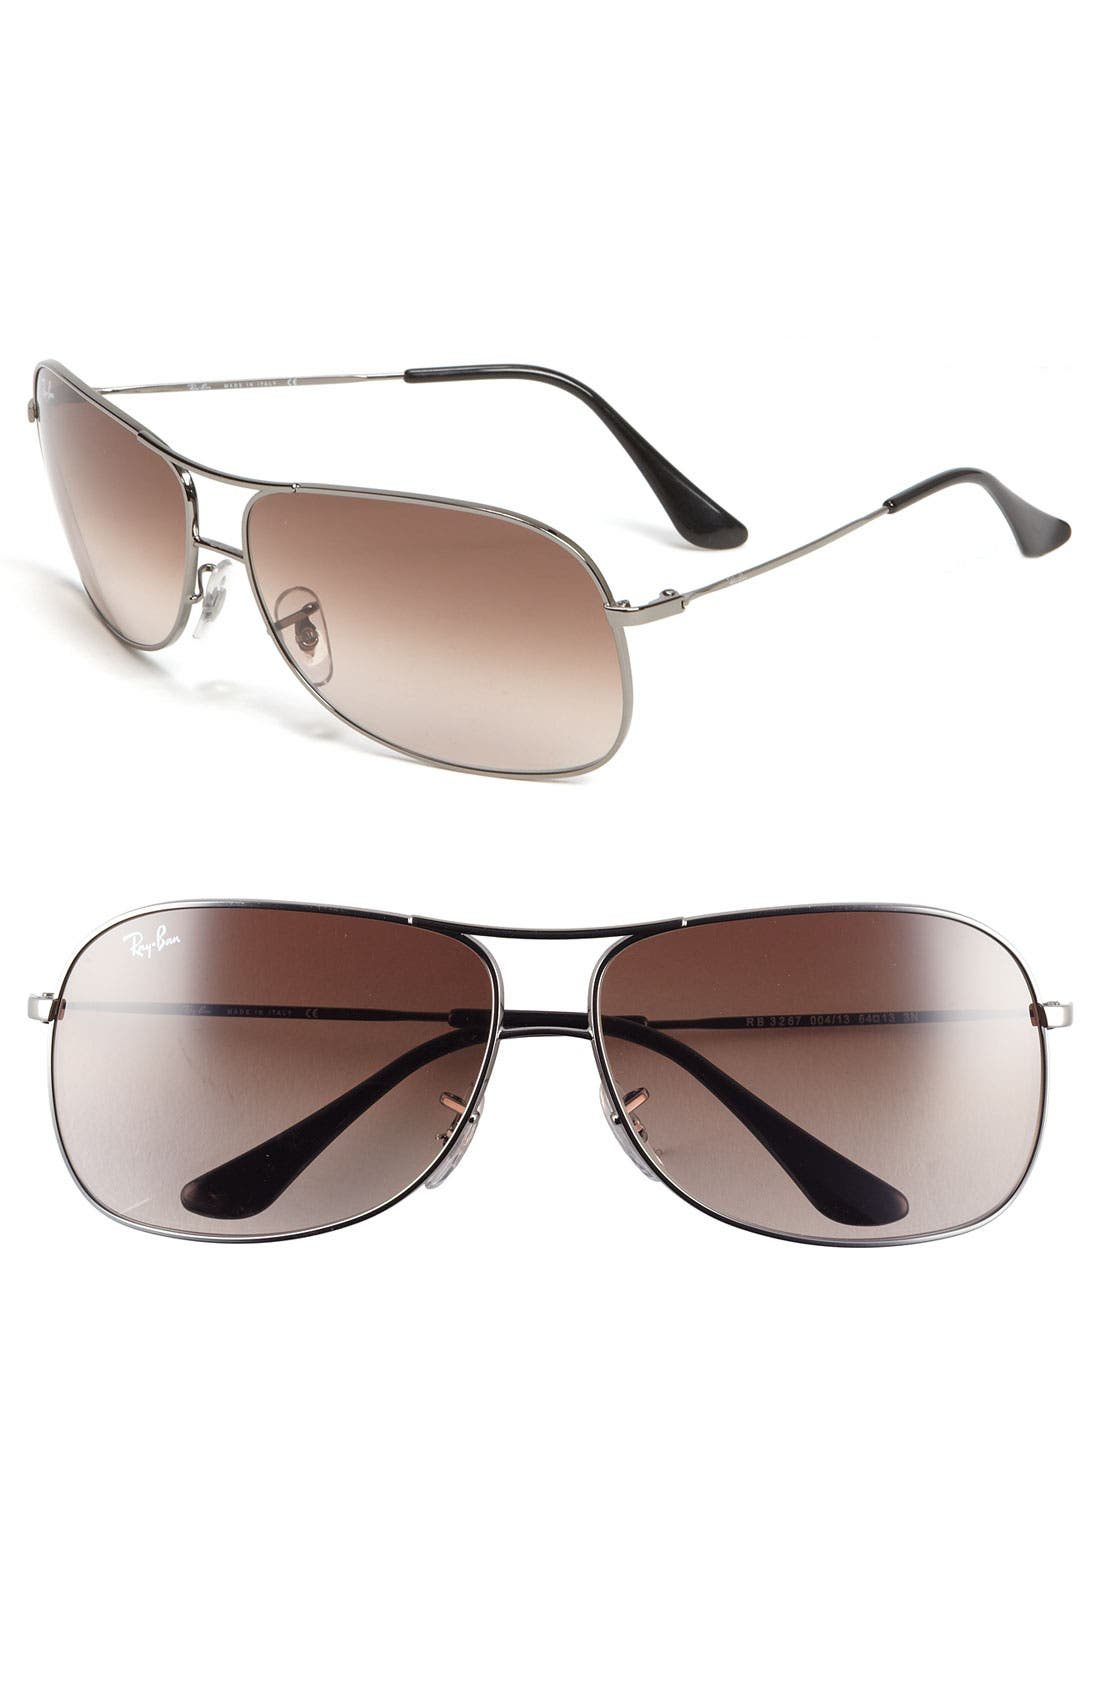 Main Image - Ray-Ban 'Square Aviator' 56mm Sunglasses